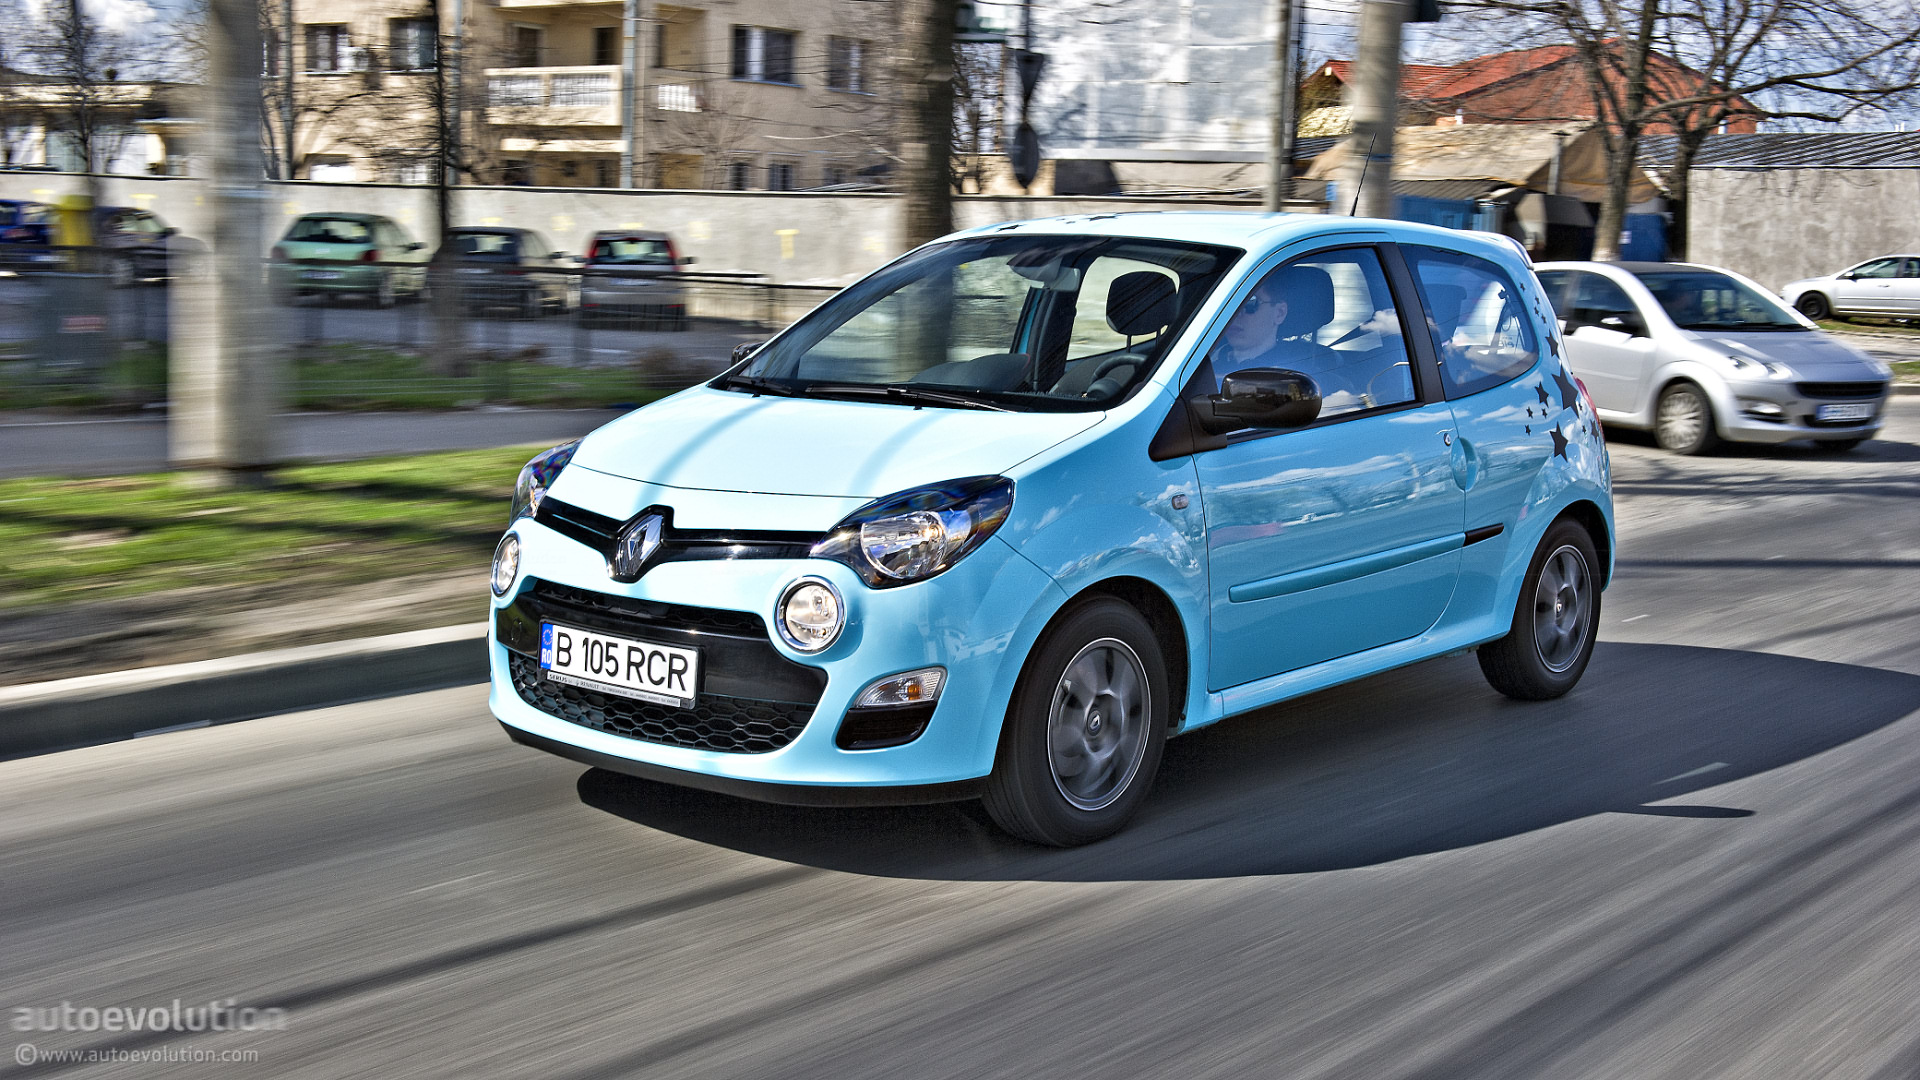 City Car or Supermini: What Car to Buy? - autoevolution